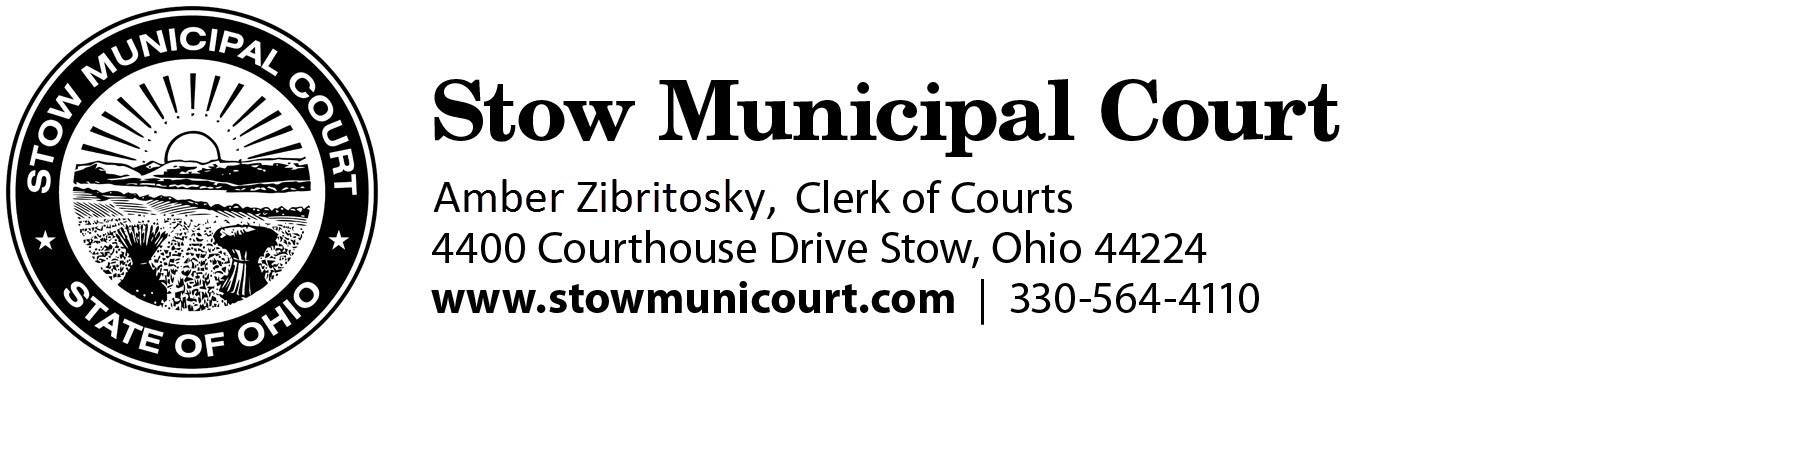 Stow Municipal Court